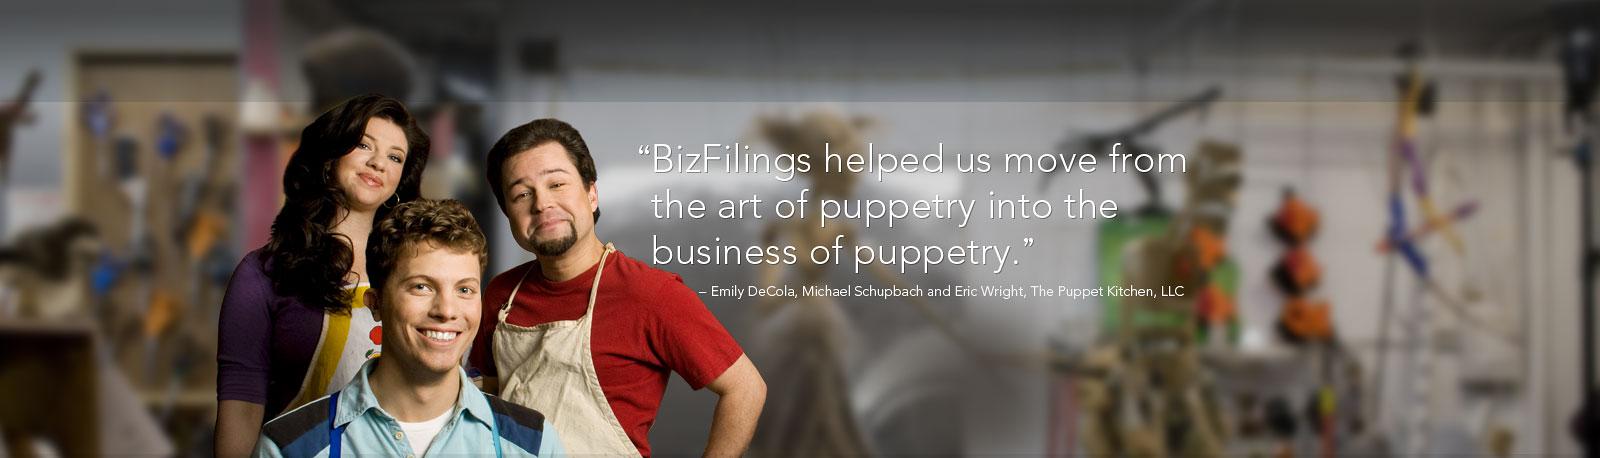 'BizFilings helped us move from the art of puppetry into the business of puppetry' - Emily DeCola, Michael Schupbach and Eric Wright, The Puppet Kitchen, LLC